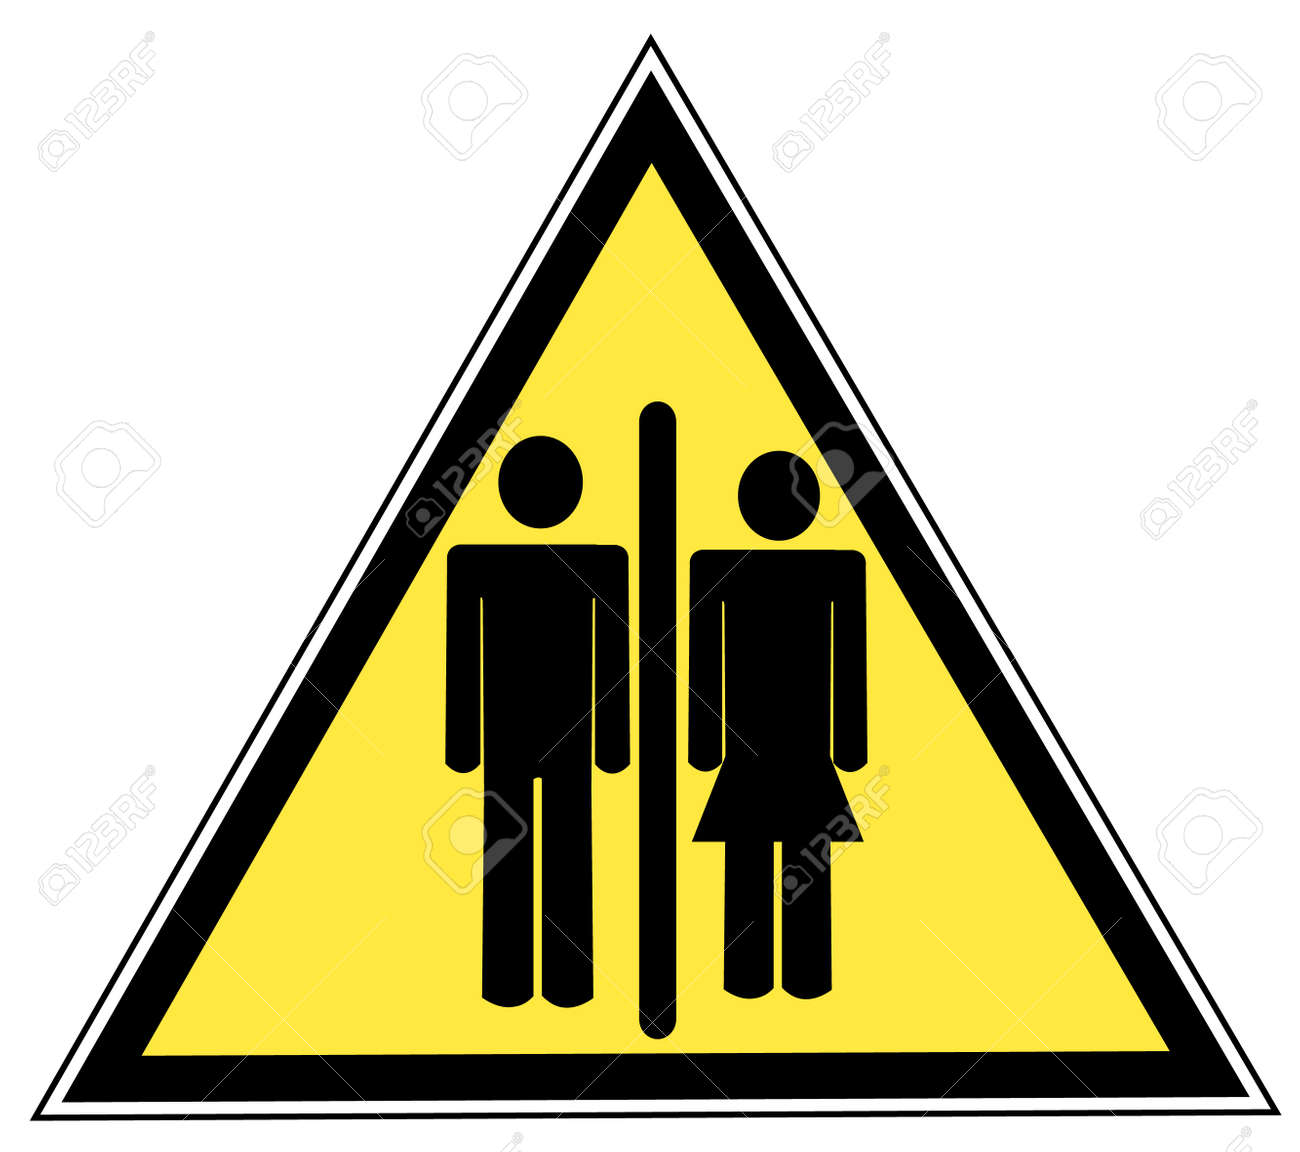 Red Stick Figure Man And Woman Or Couple On Yellow Sign Royalty Free